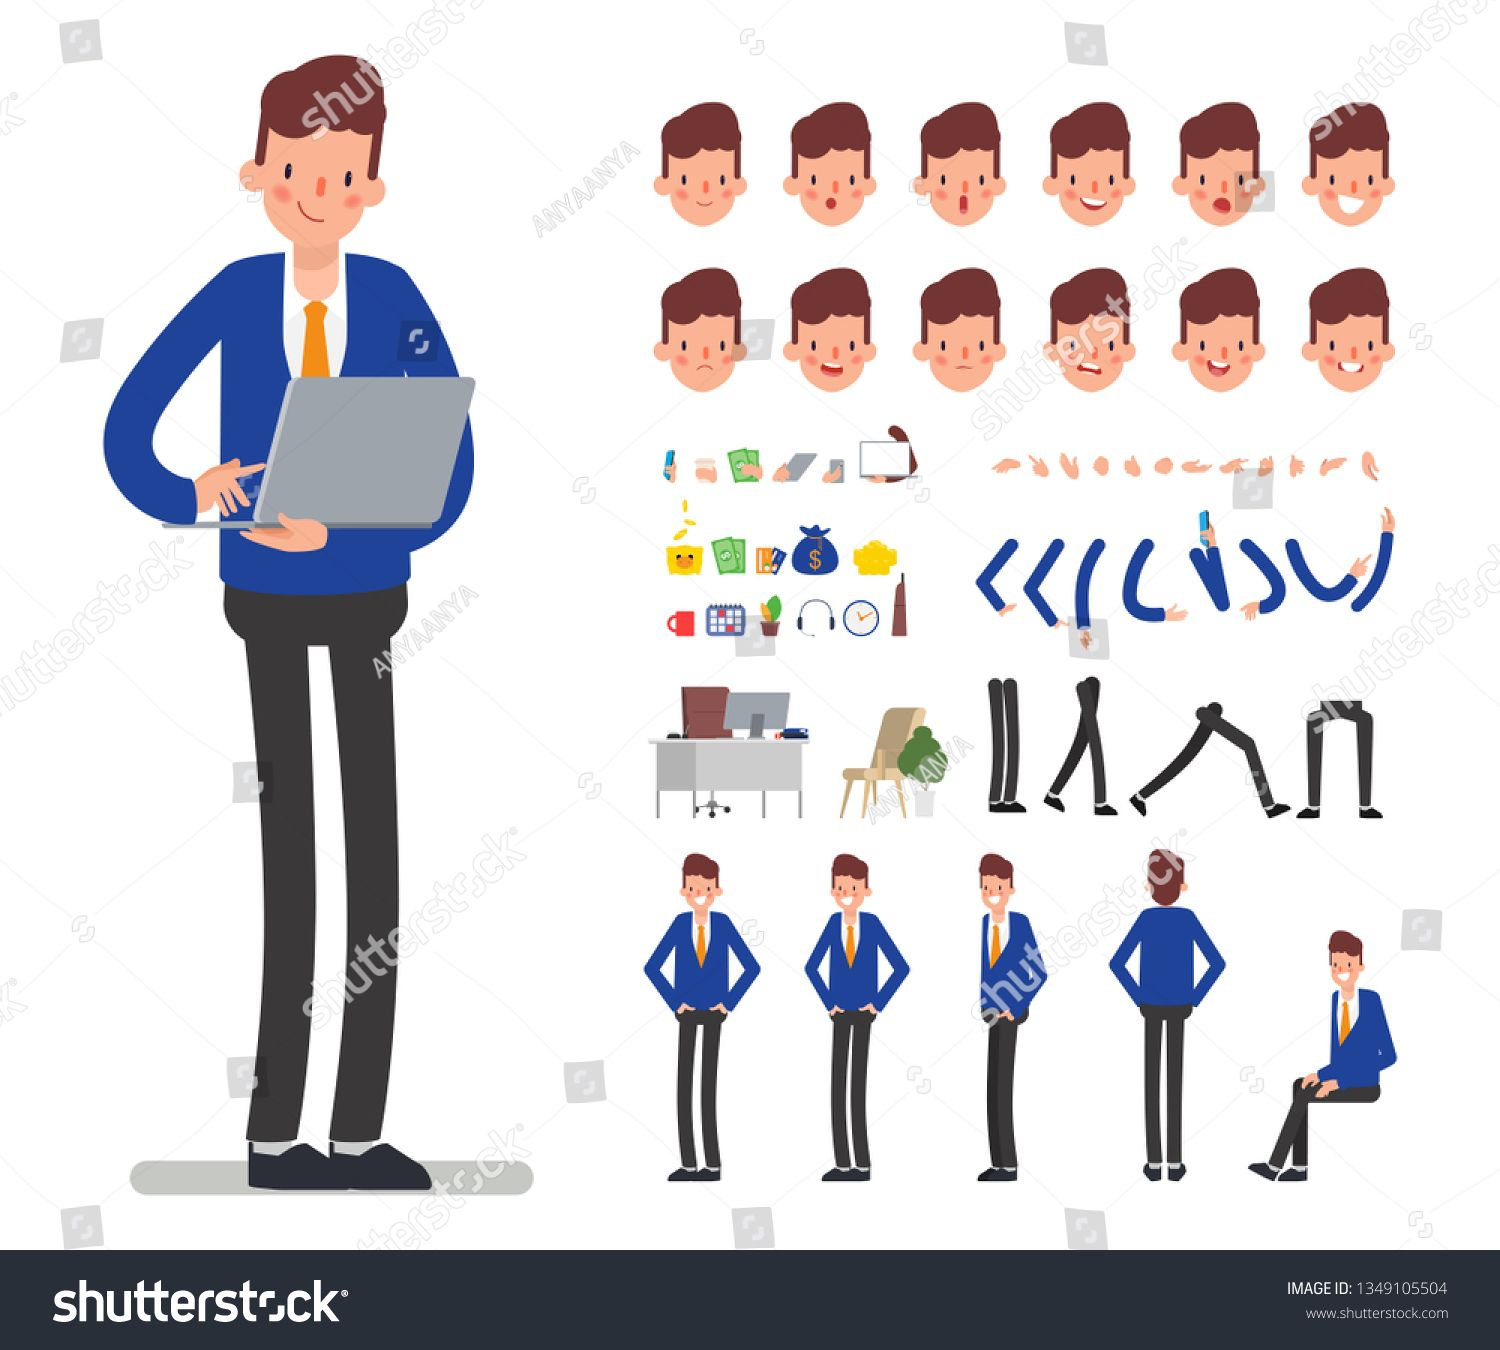 45+ Animated People Clipart Blind Man Wearing Robe